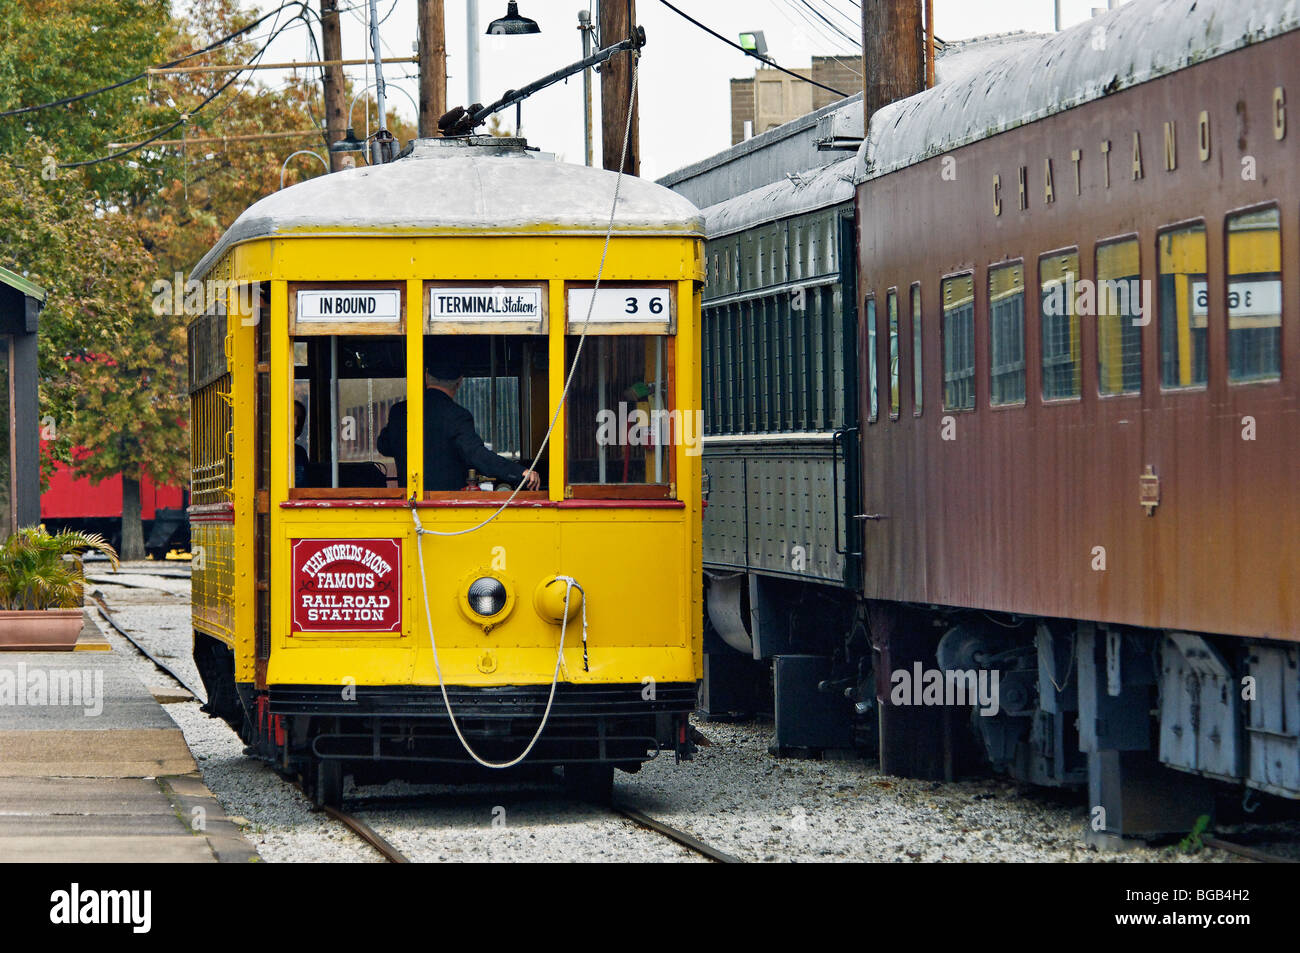 Trolley at the Chattanooga Choo Choo Station in Chattanooga, Tennessee - Stock Image